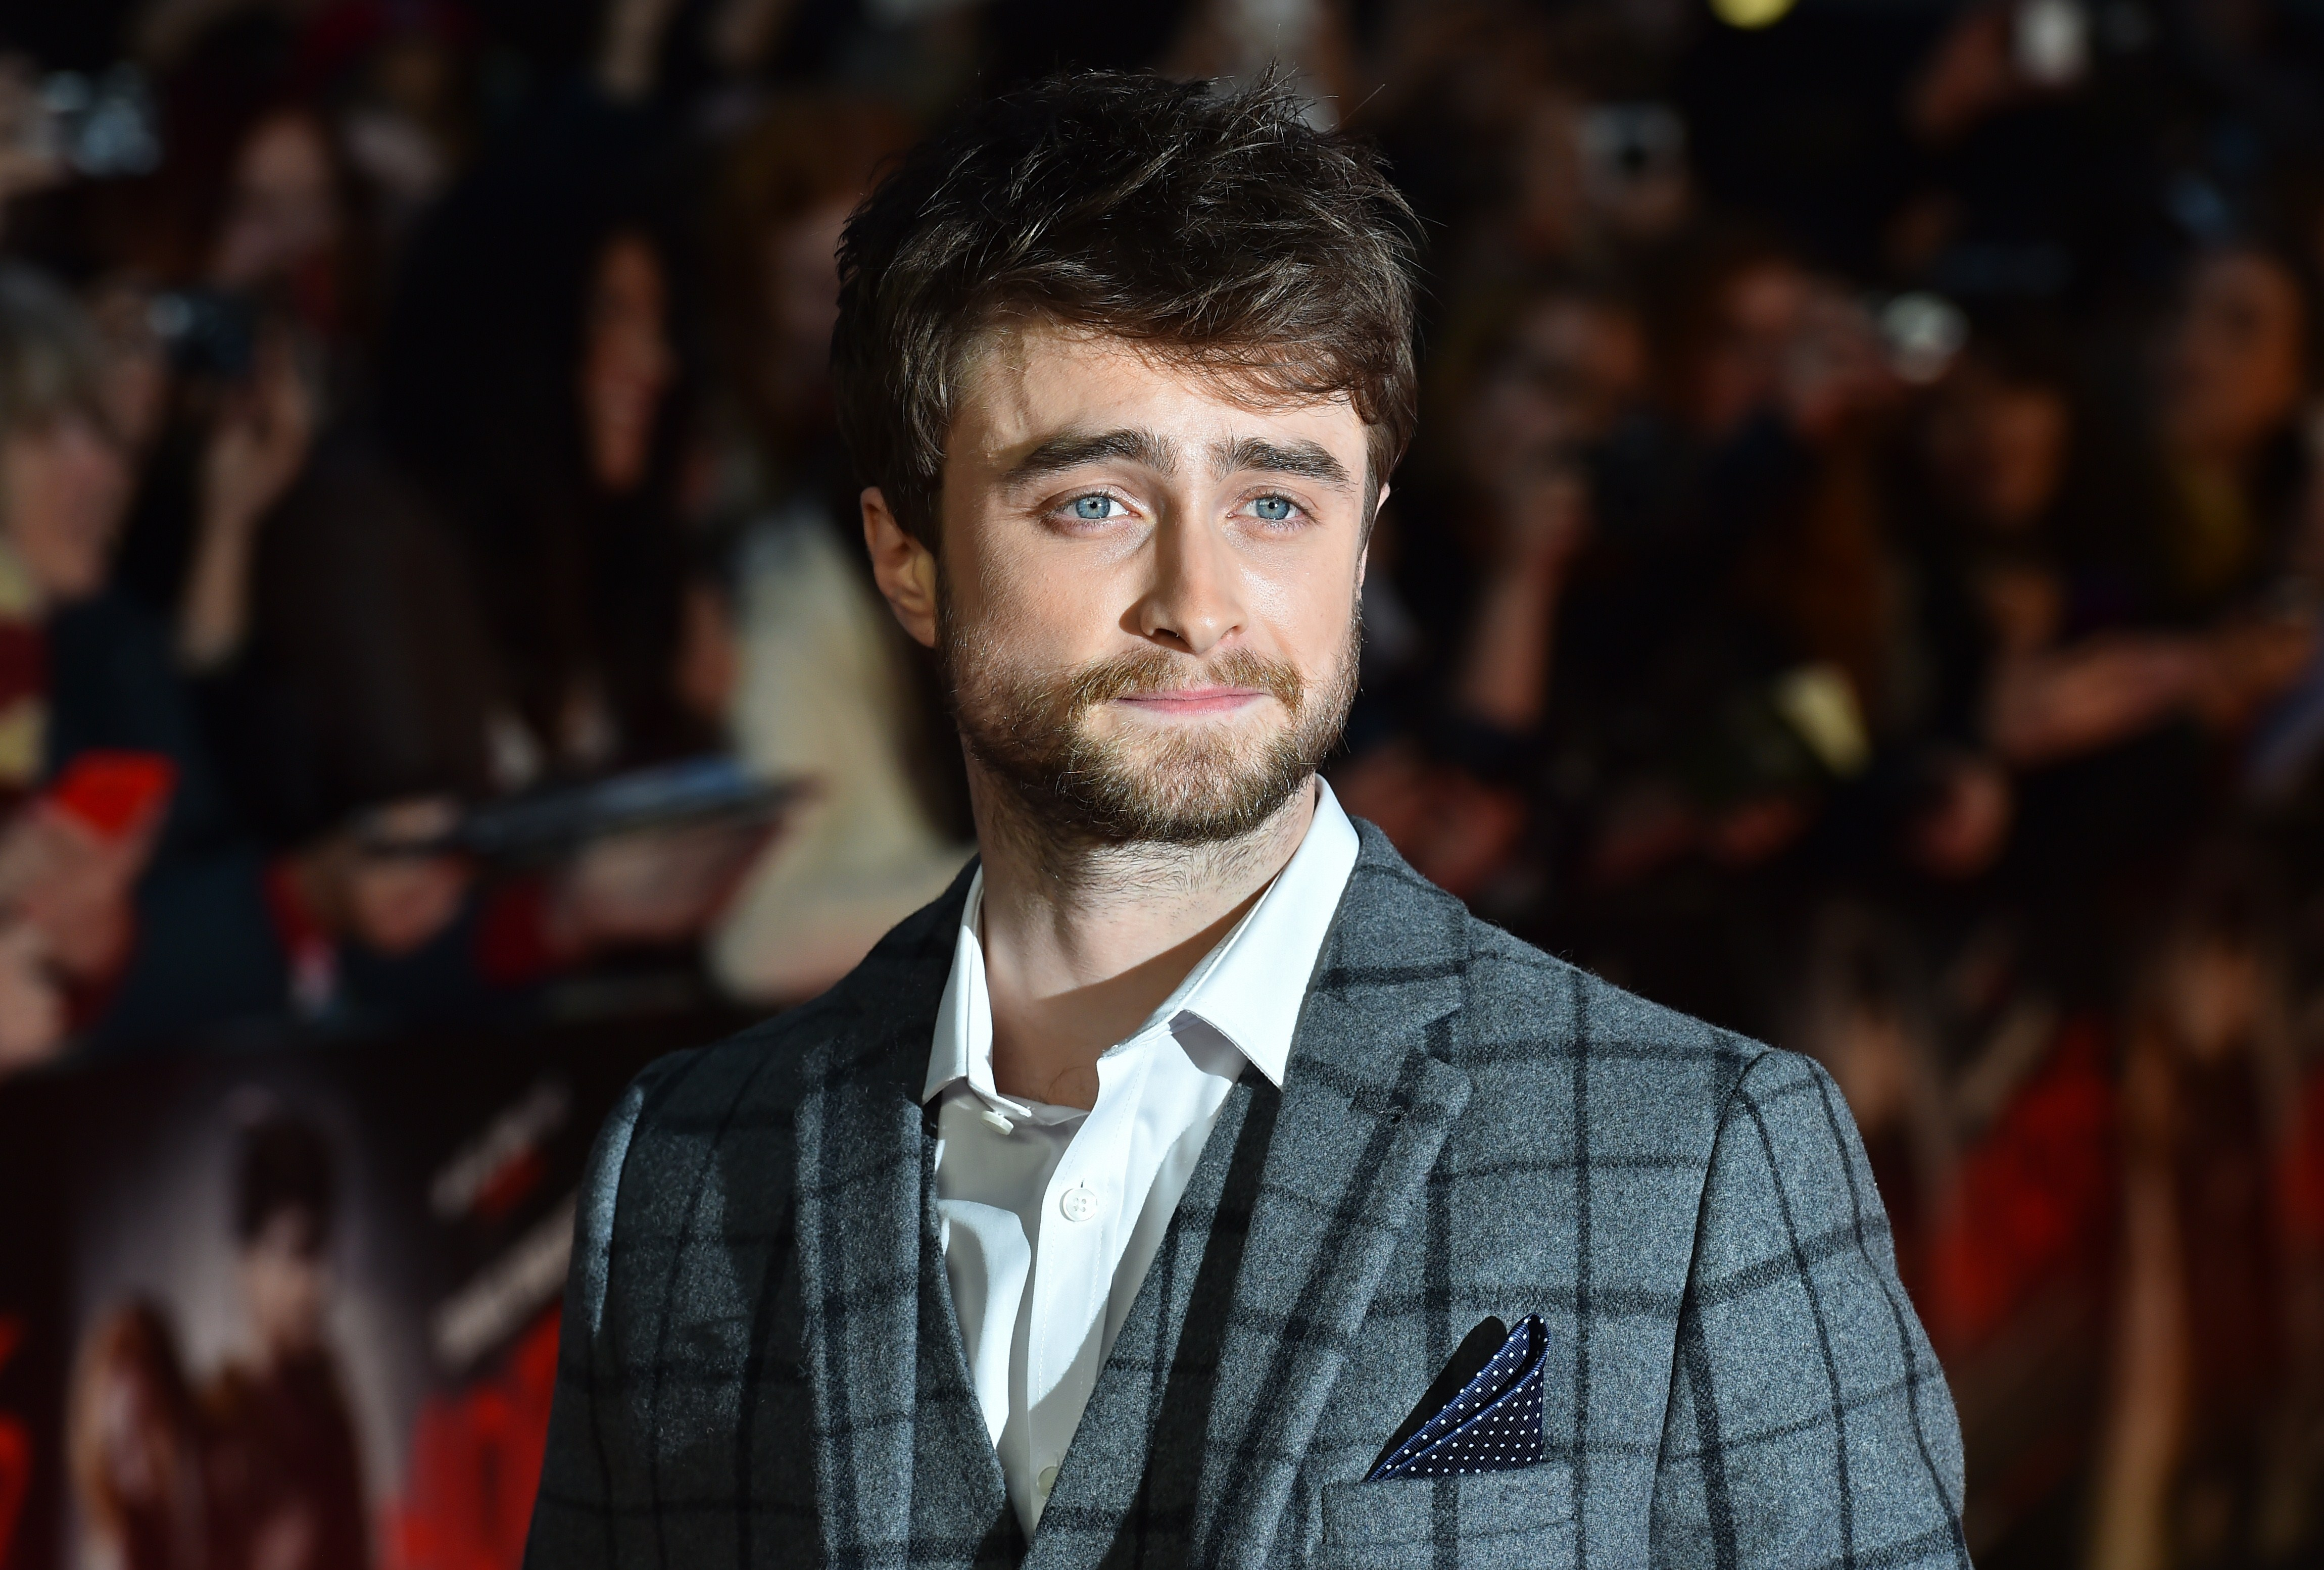 Daniel Radcliffe will play in a film about creating a scandalous series of games 04/09/2015 99